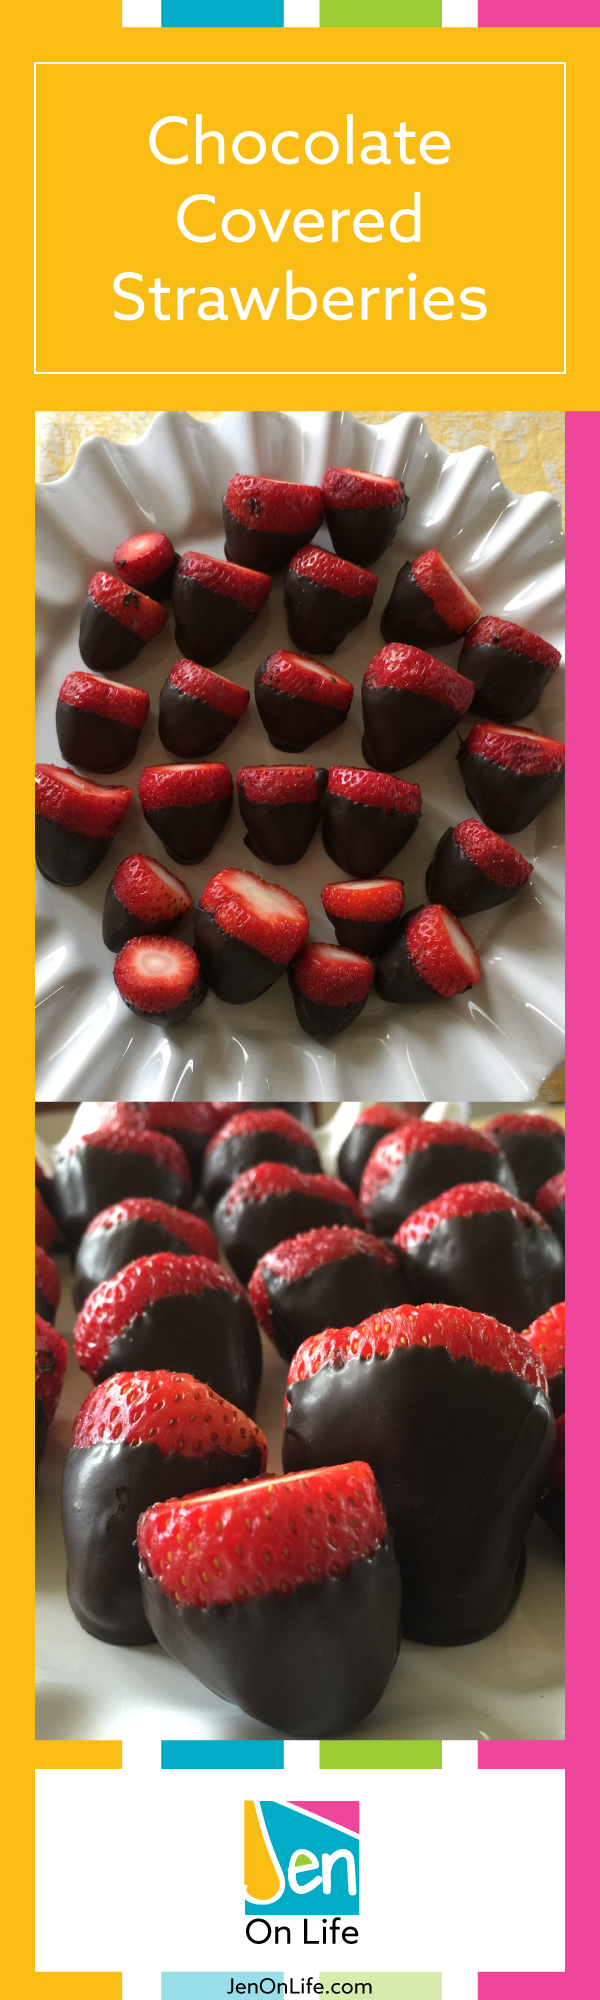 How to make chocolate covered strawberries. It makes a yummy snack / dessert for the entire family.